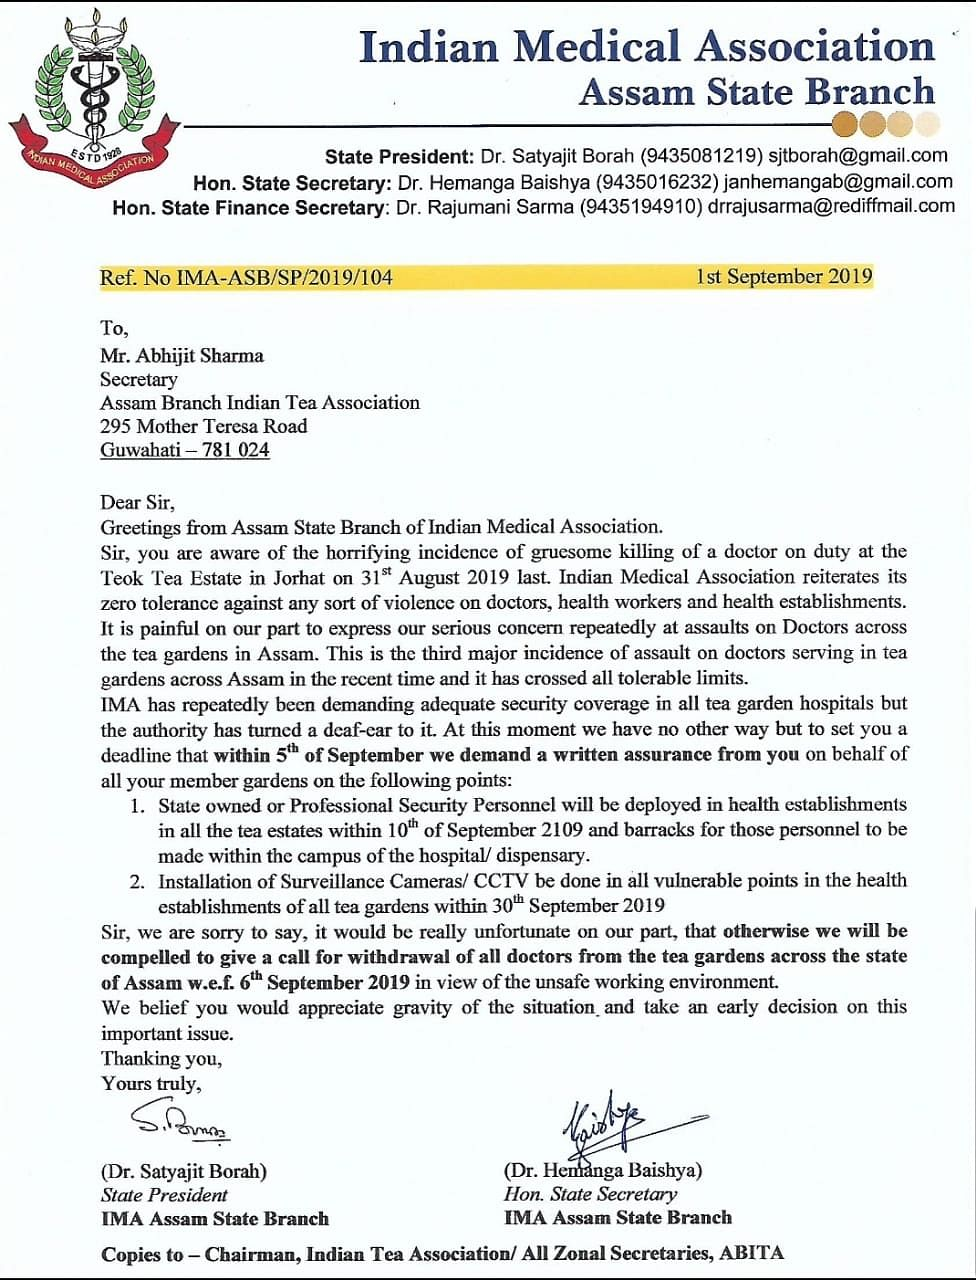 The letter written by the Indian Medical Association Assam state branch to Assam Branch Indian Tea Association on Sunday